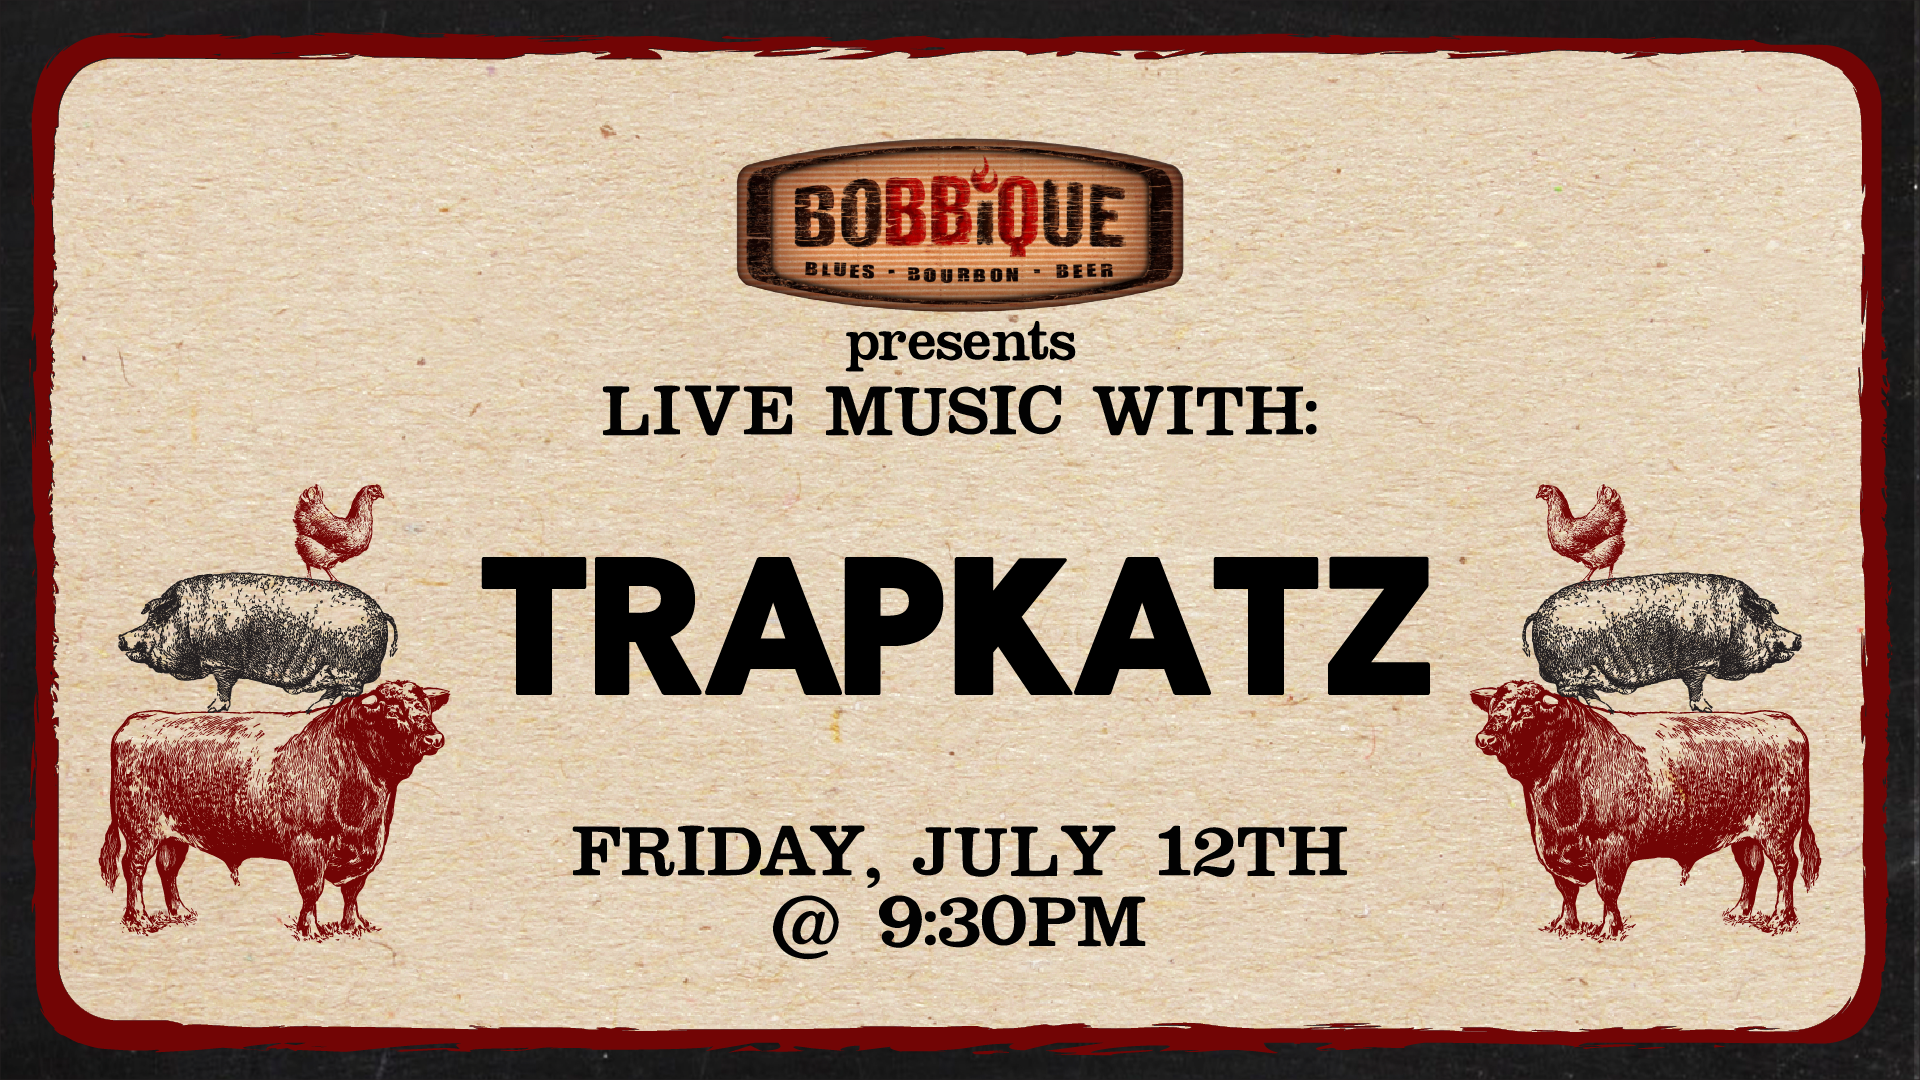 Live Music with the Trapkatz